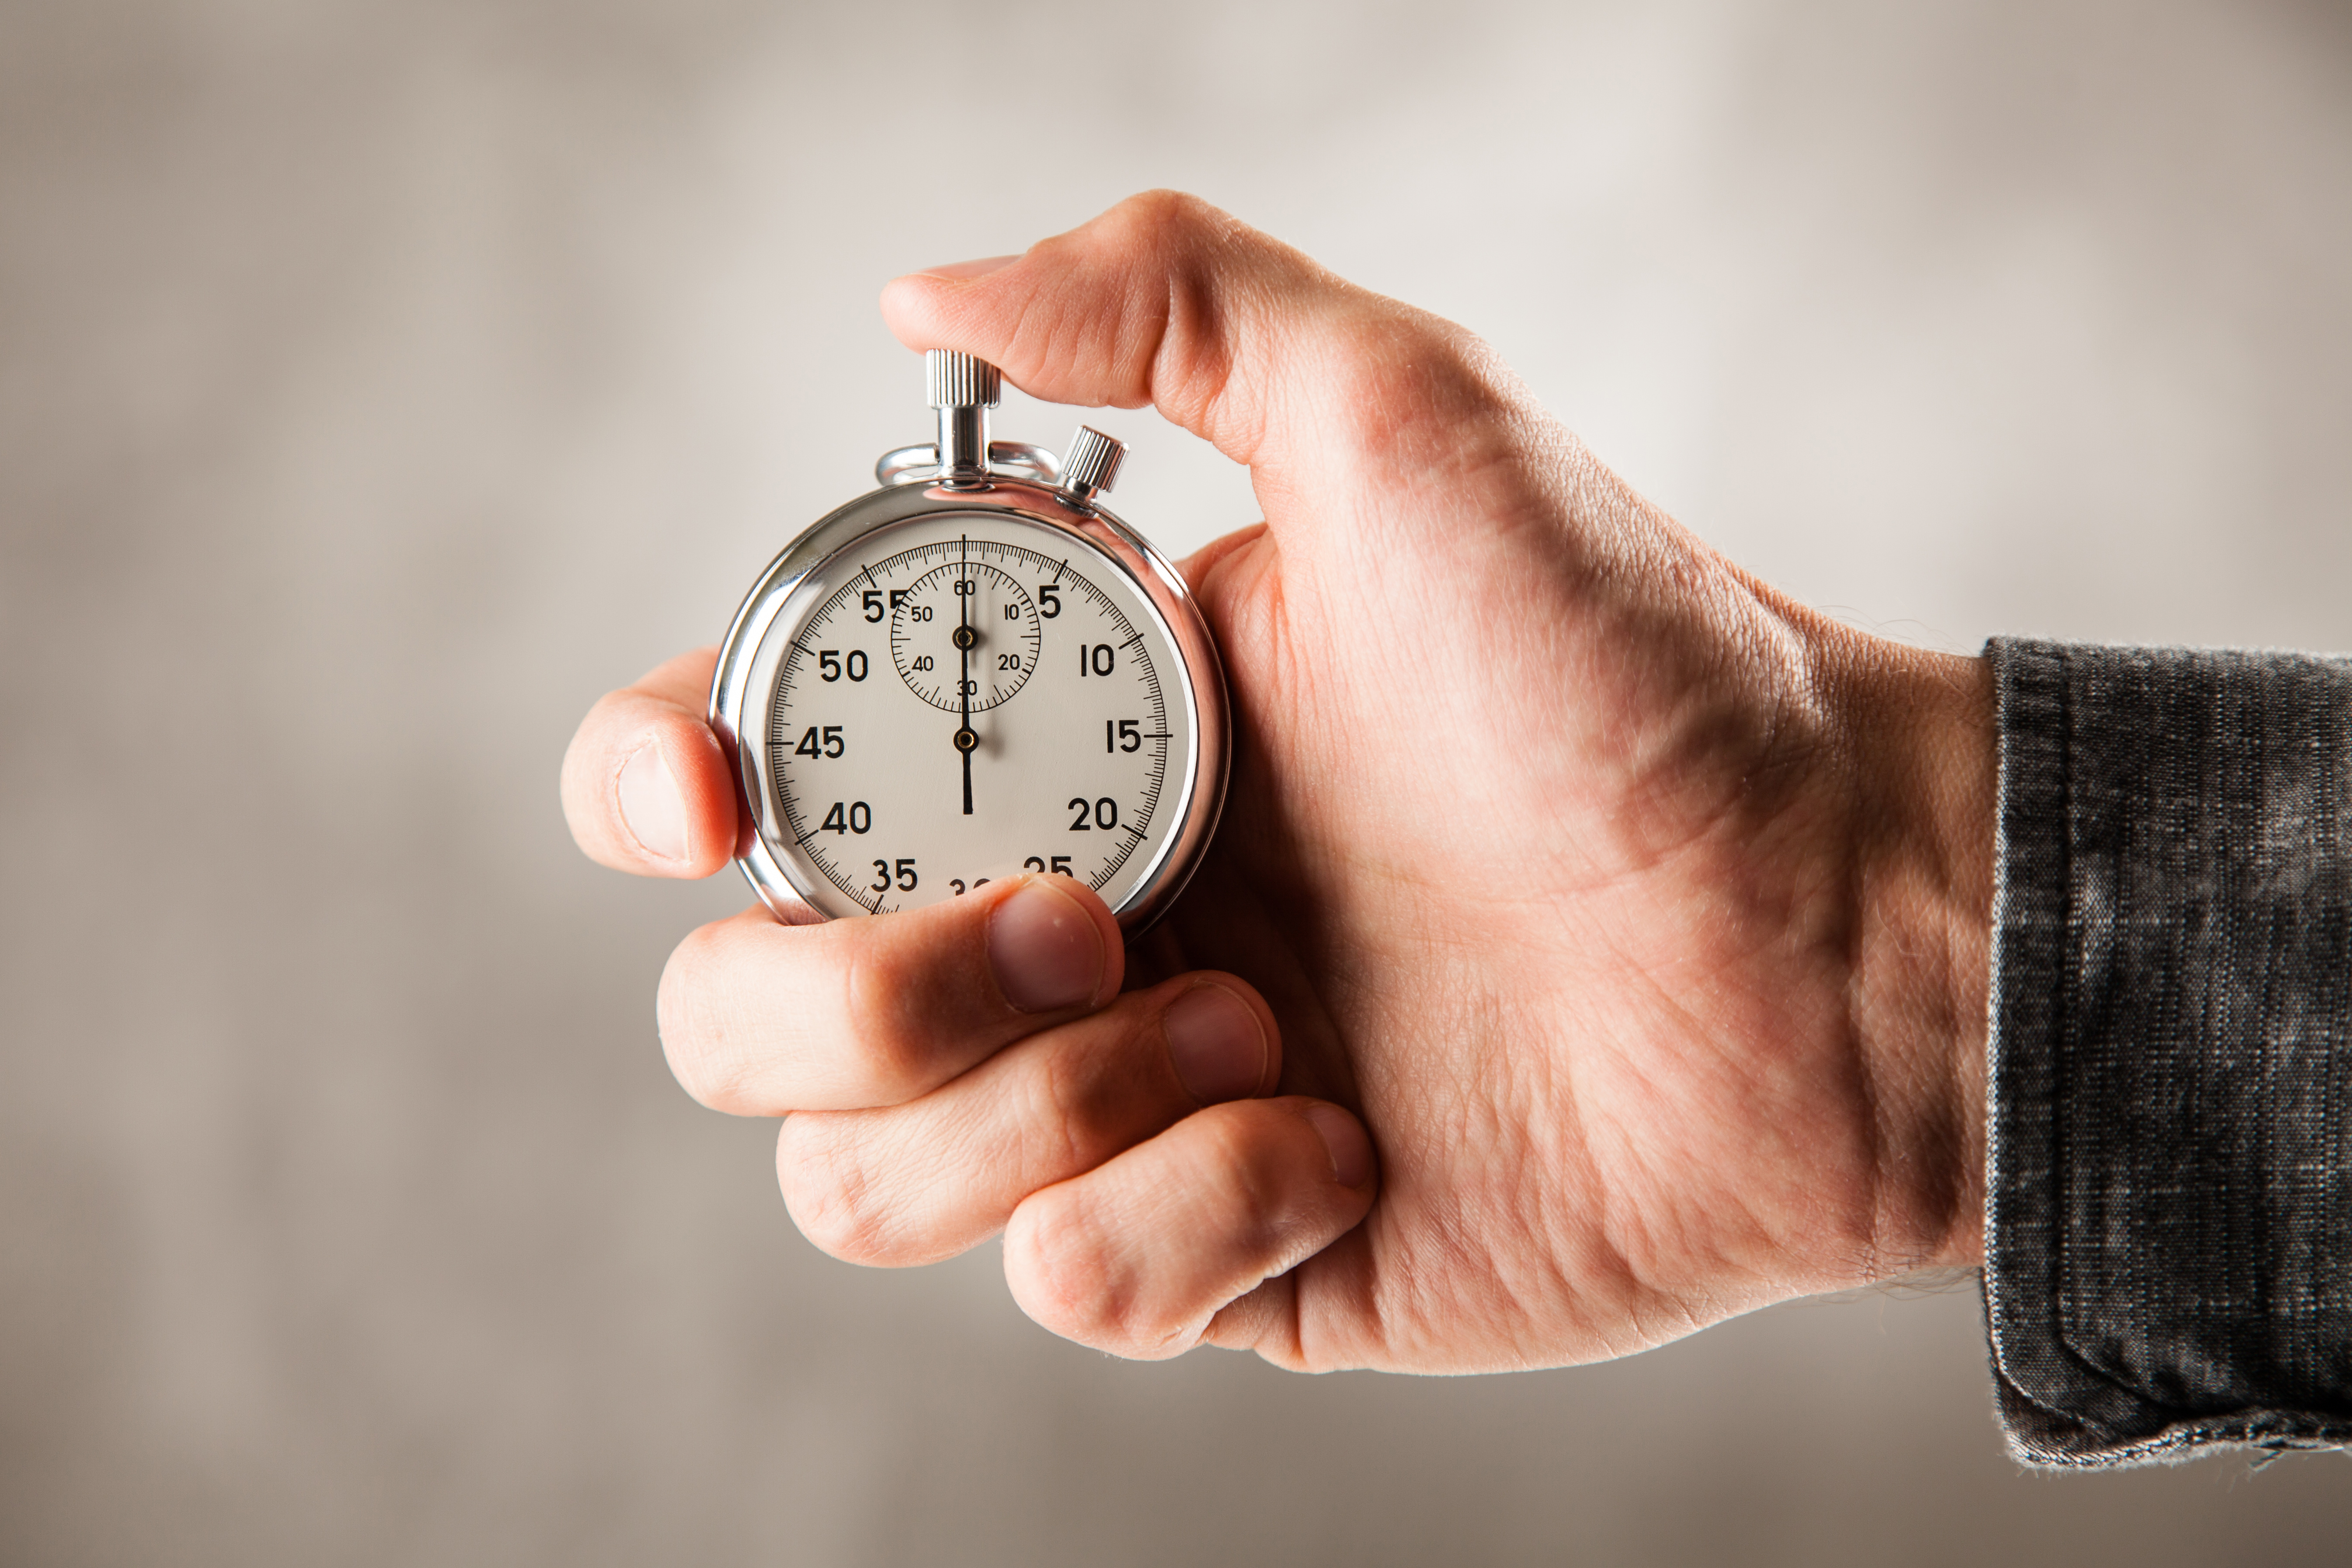 AdobeStock_204217056_Preview stop watch